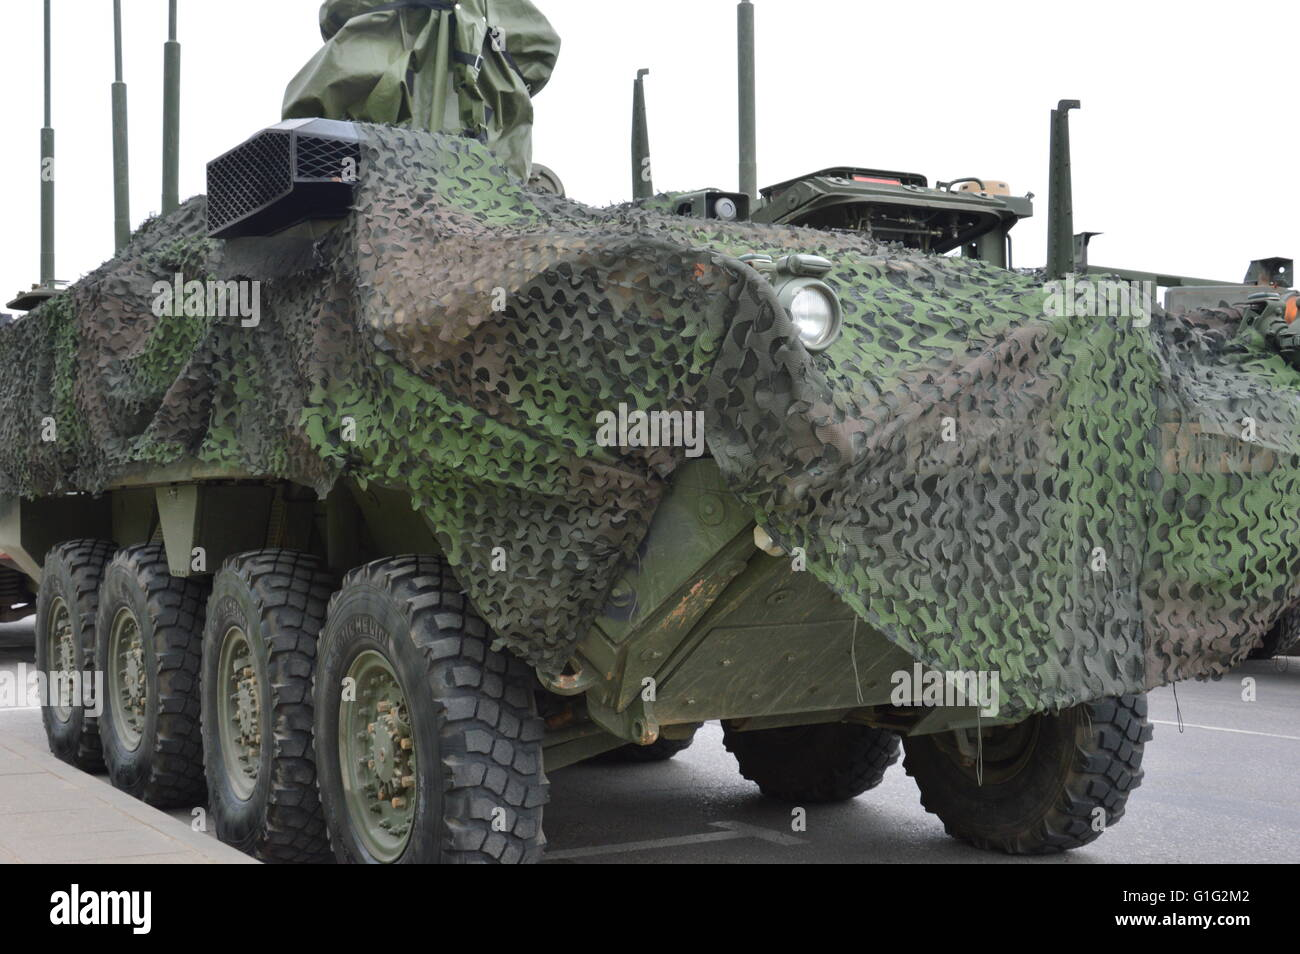 Military transport at exposition - Stock Image